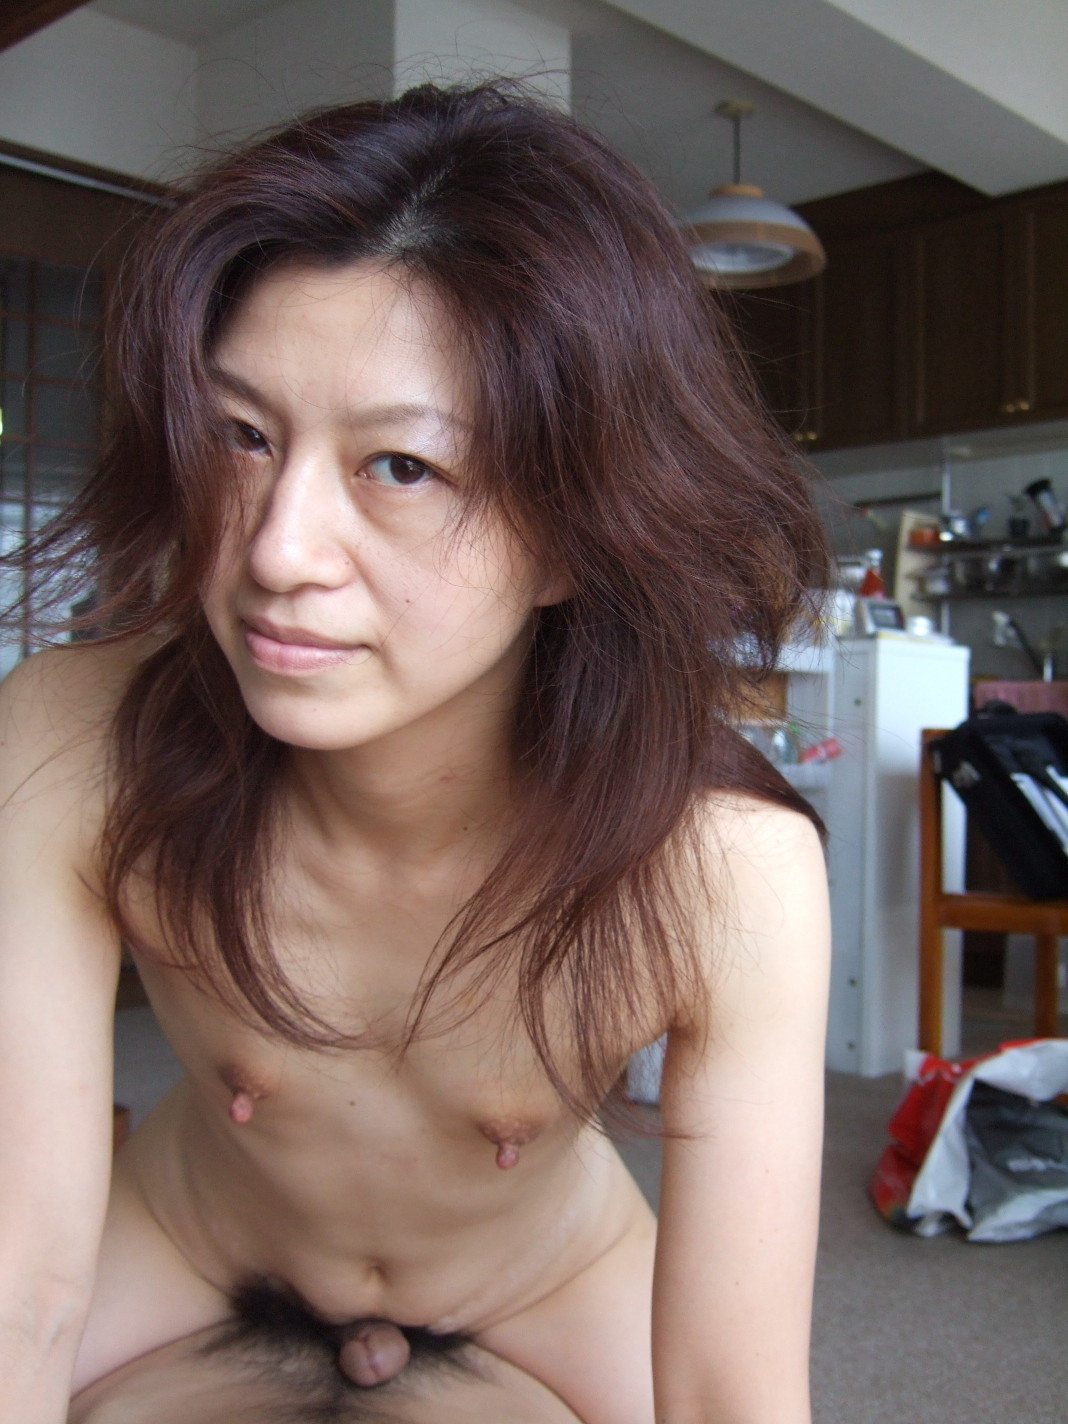 Mature asians gallery